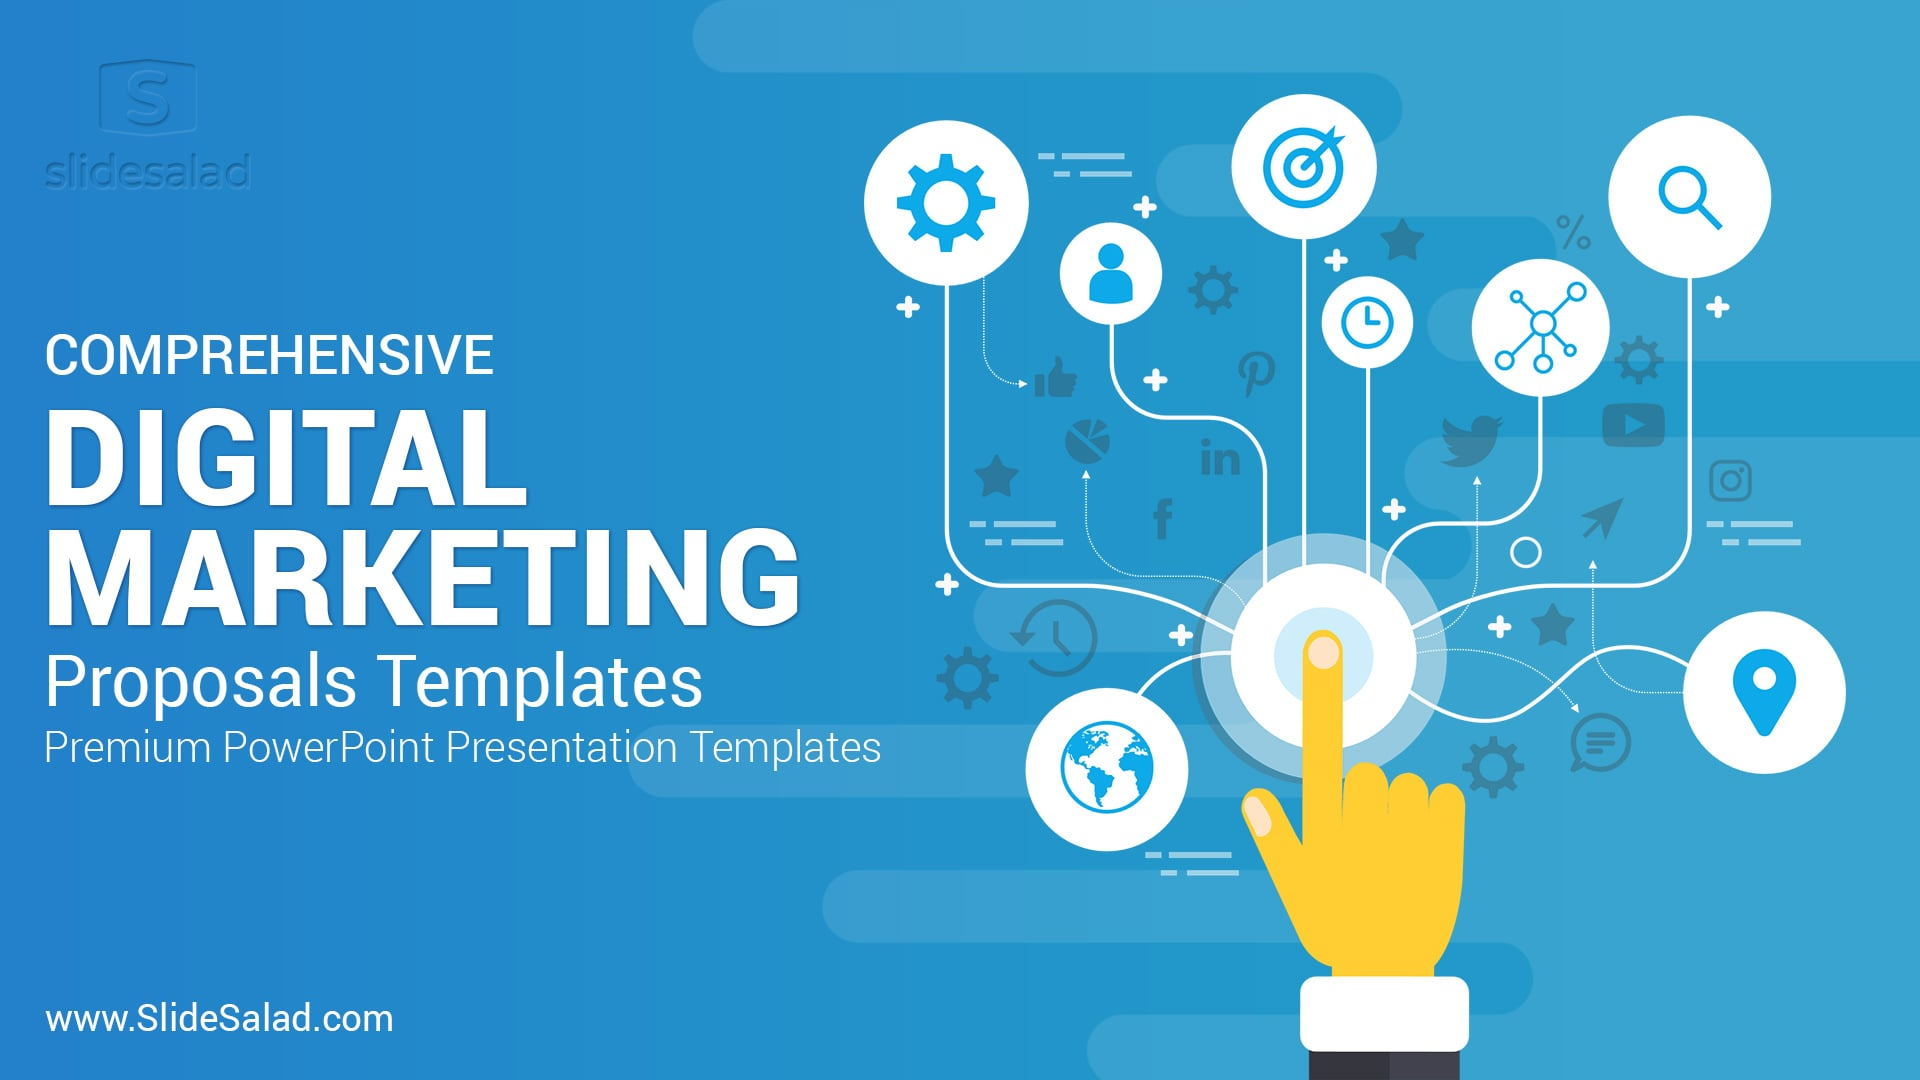 Best Digital Marketing Proposals PowerPoint Templates - Top Selling Marketing Template